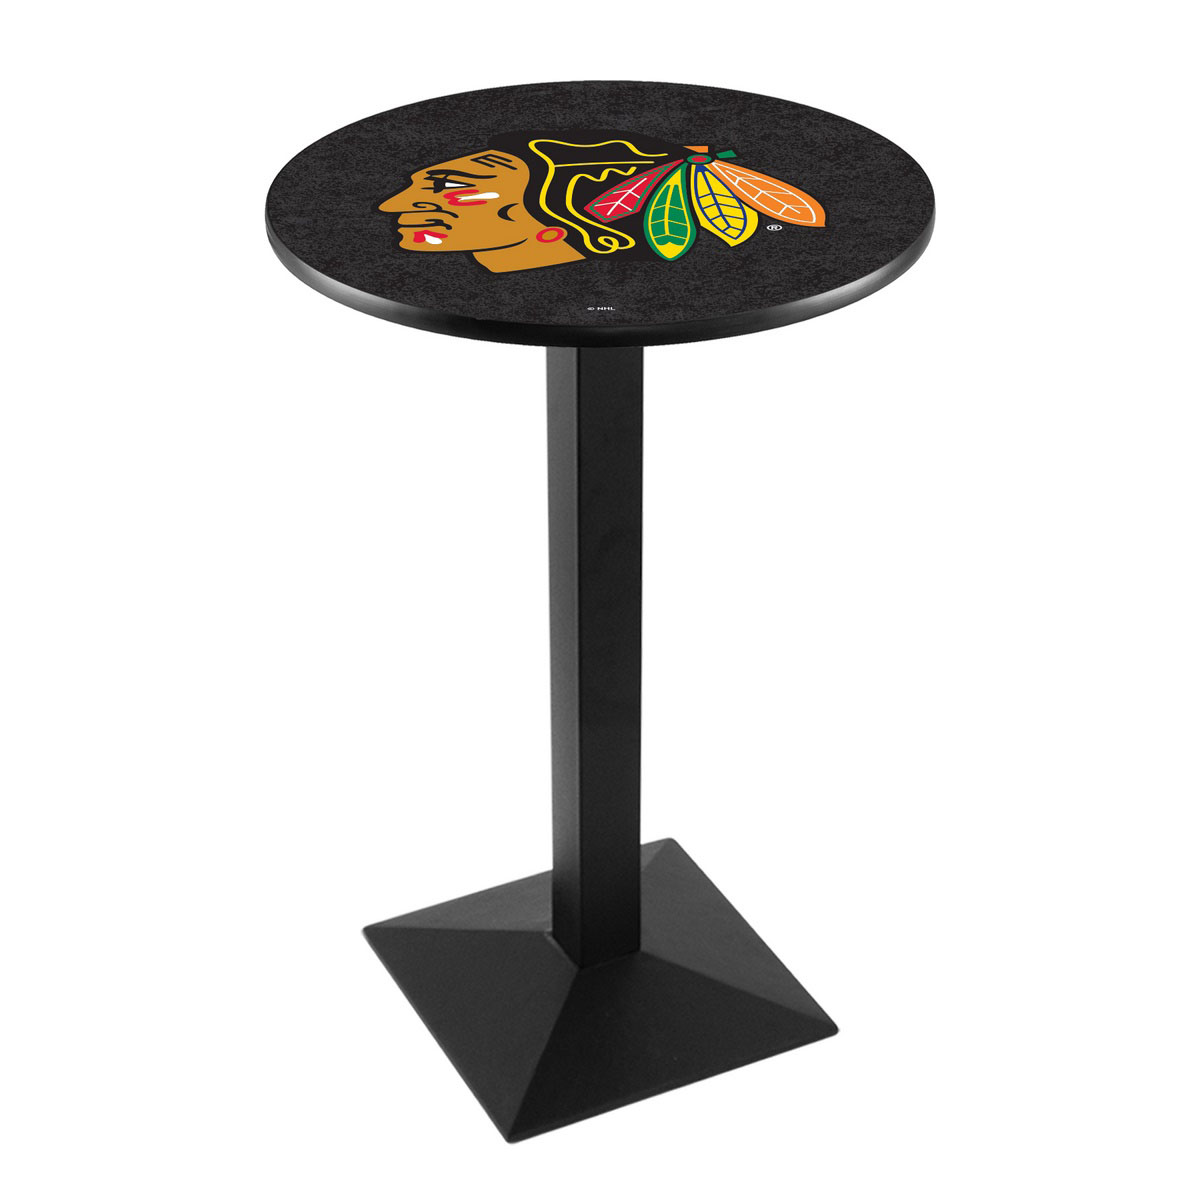 Select Chicago hawks Background Logo Pub Bar Table Square Stand Product Photo